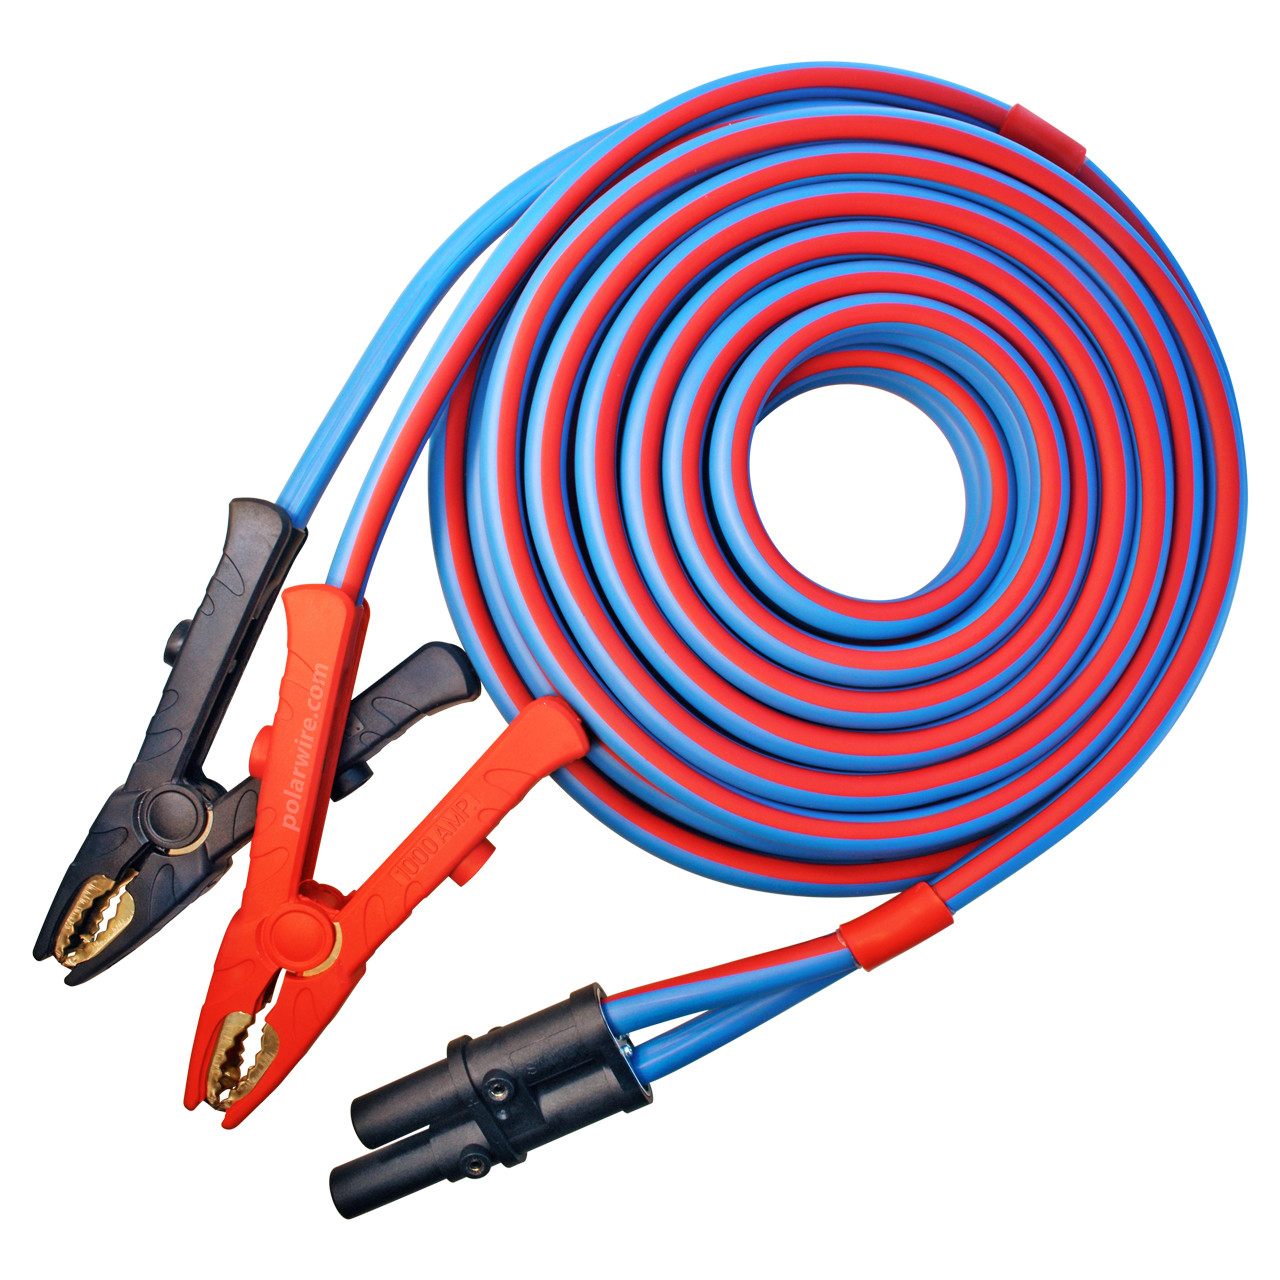 Polar Wire Booster Cables feature replaceable clamps and heat shrink sealed connections for a lifetime of trouble free performance